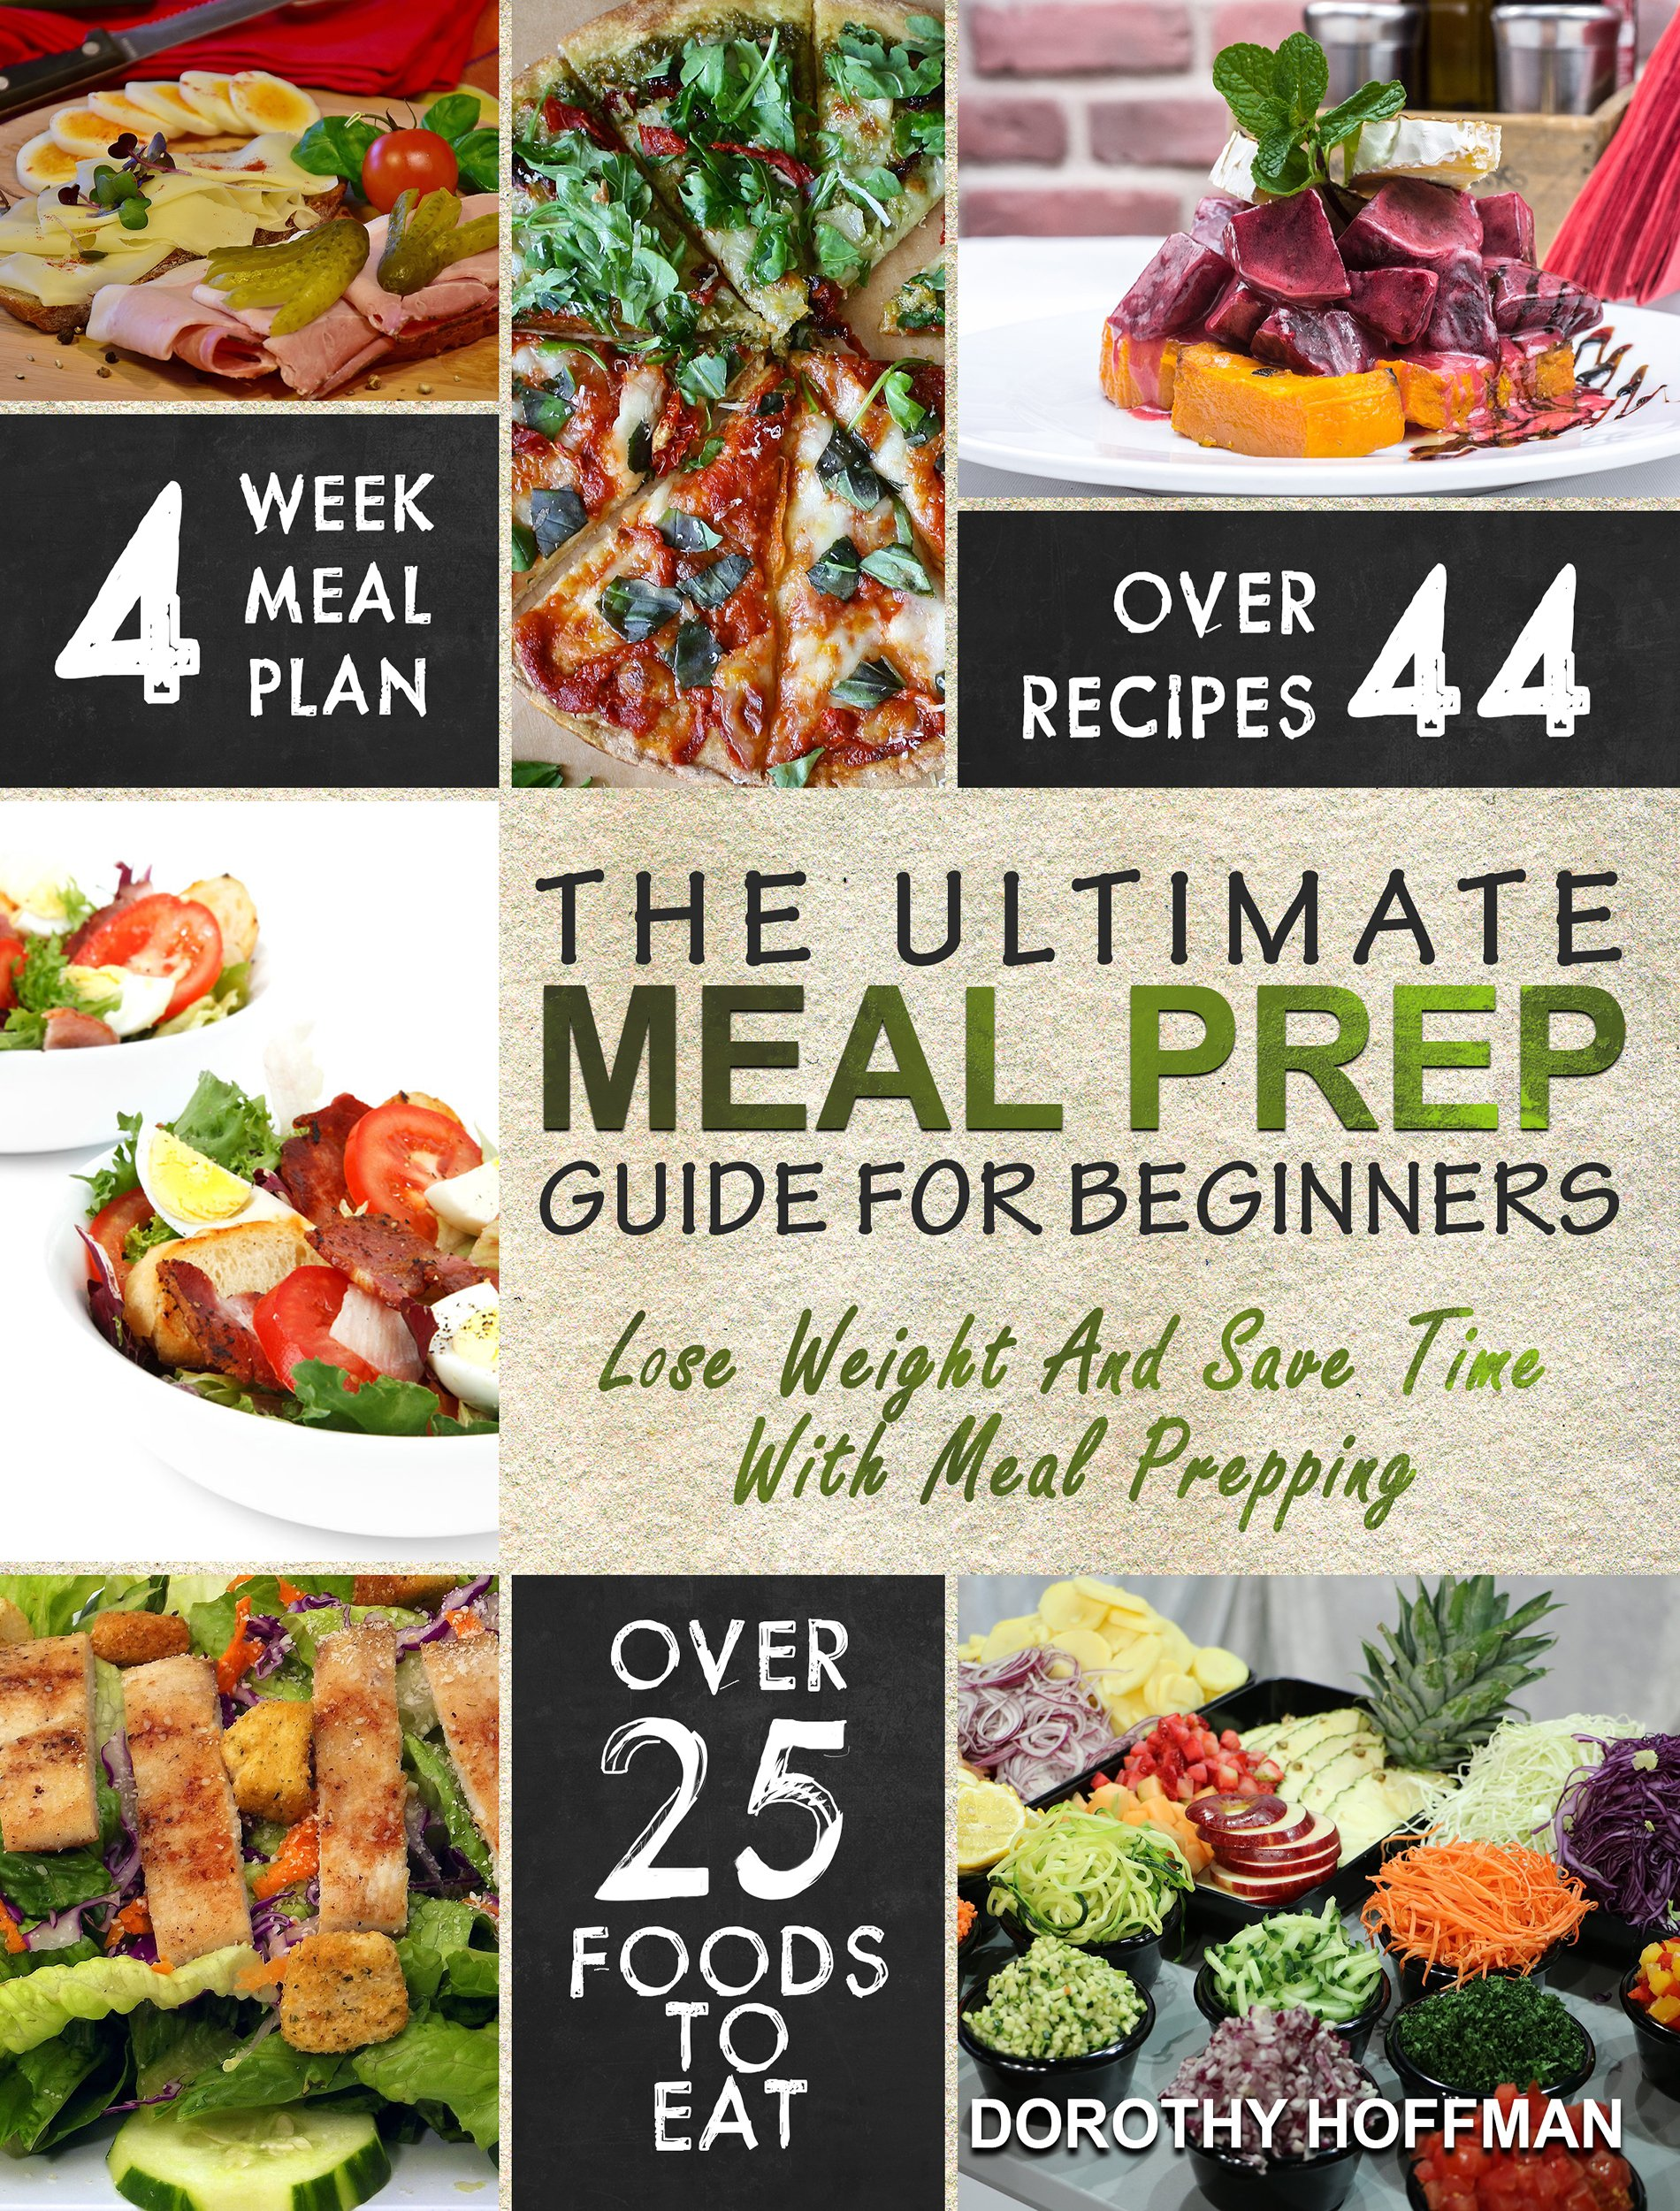 Meal Prep  The Essential Meal Prep Guide For Beginners – Lose Weight And Save Time With Meal Prepping  Low Carb Meal Prep   English Edition